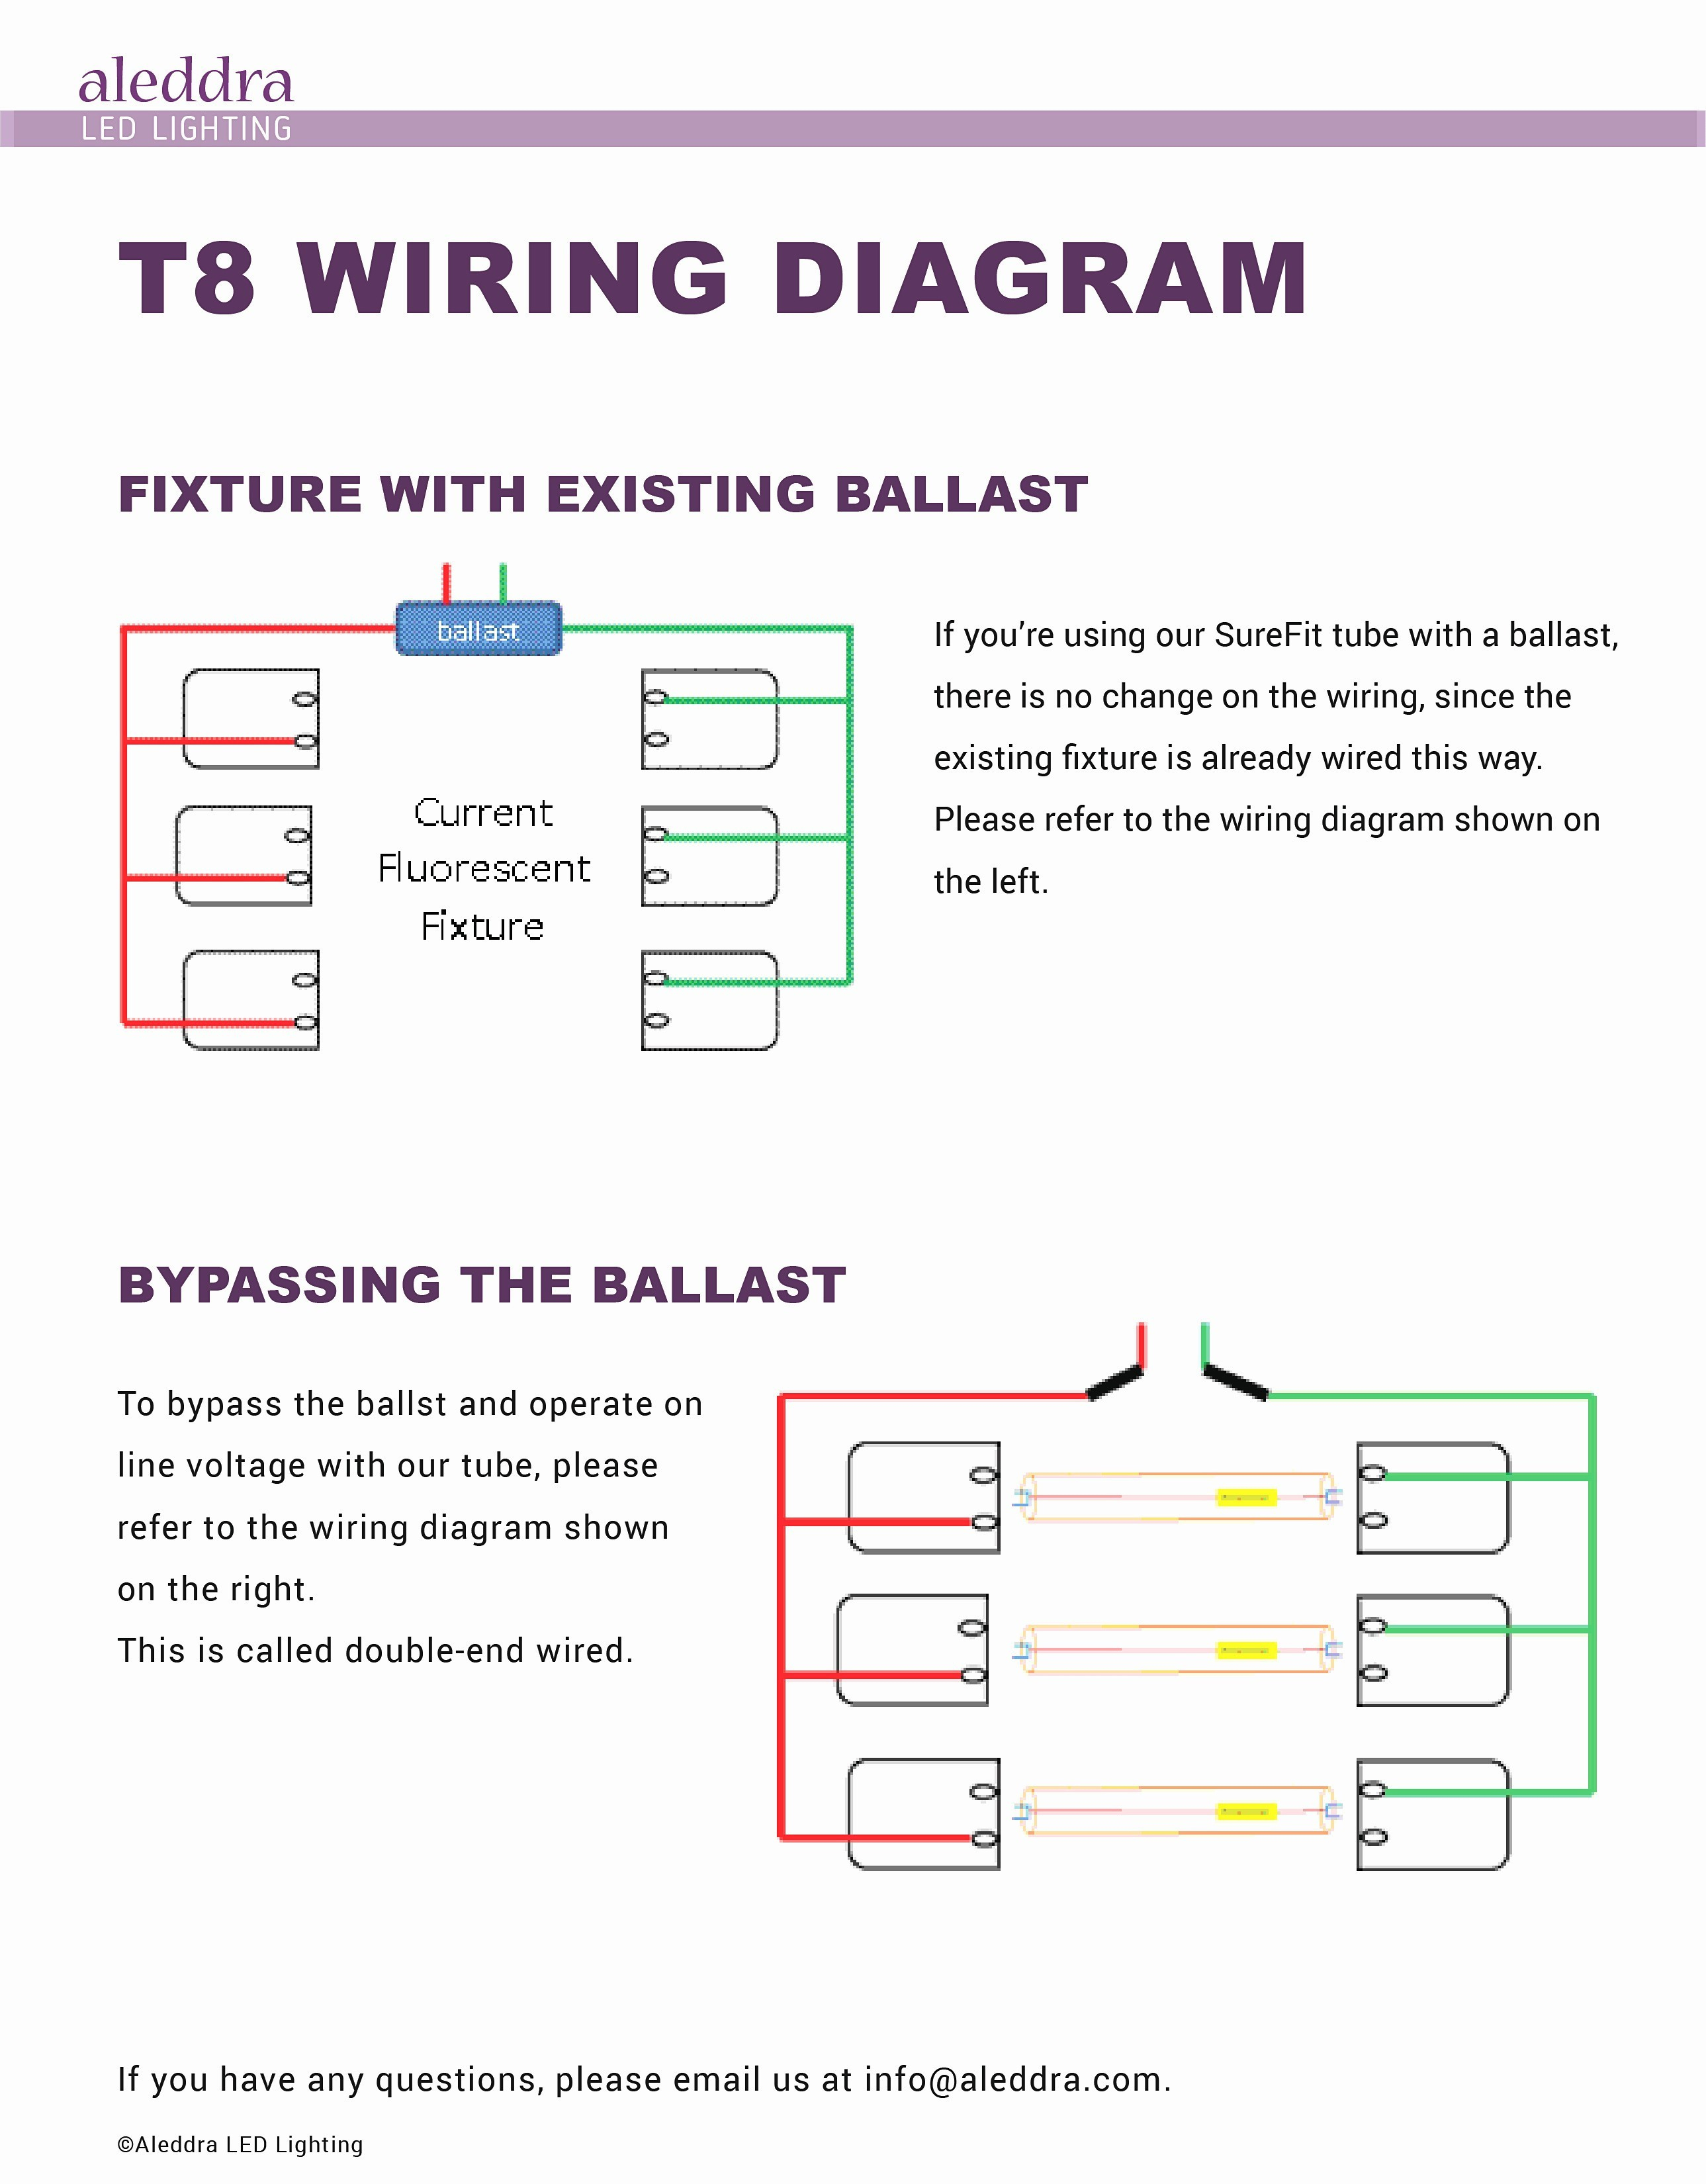 2 Lamp T8 Ballast Wiring Diagram Awesome 20 Fresh Of 4 | Wiring - 4 Lamp T8 Ballast Wiring Diagram